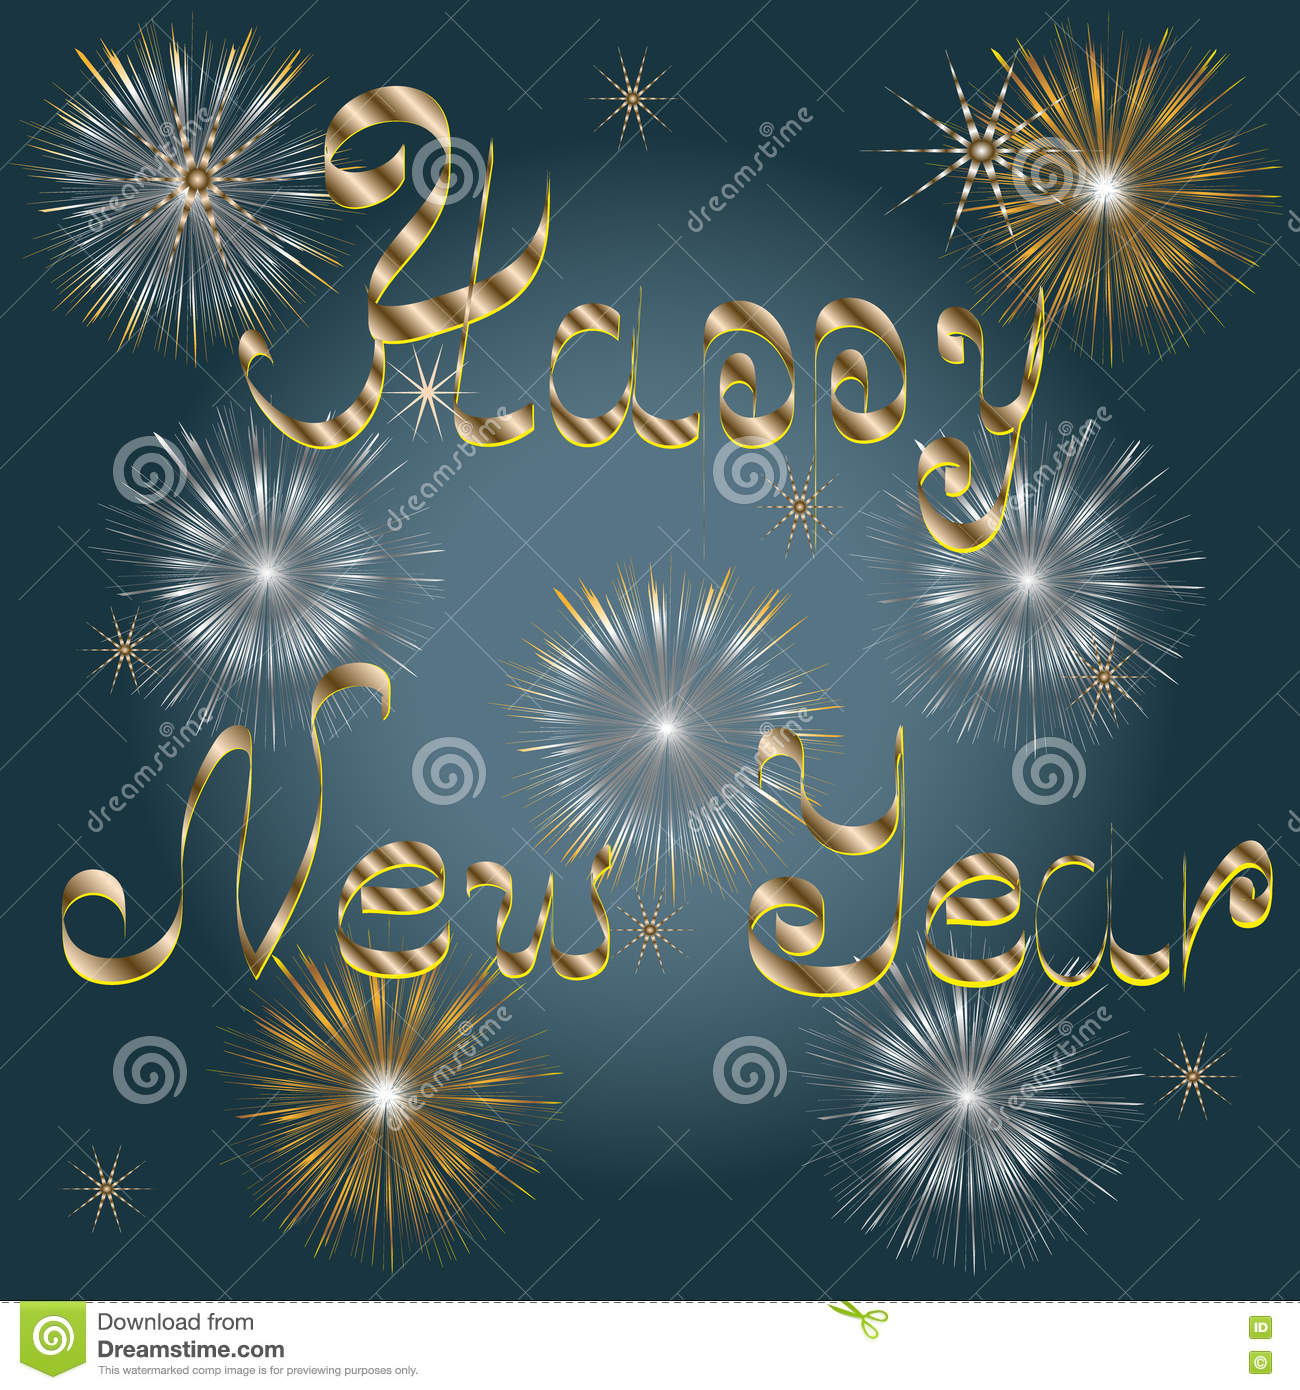 Greeting Card With A Happy New Year Stock Vector Illustration Of